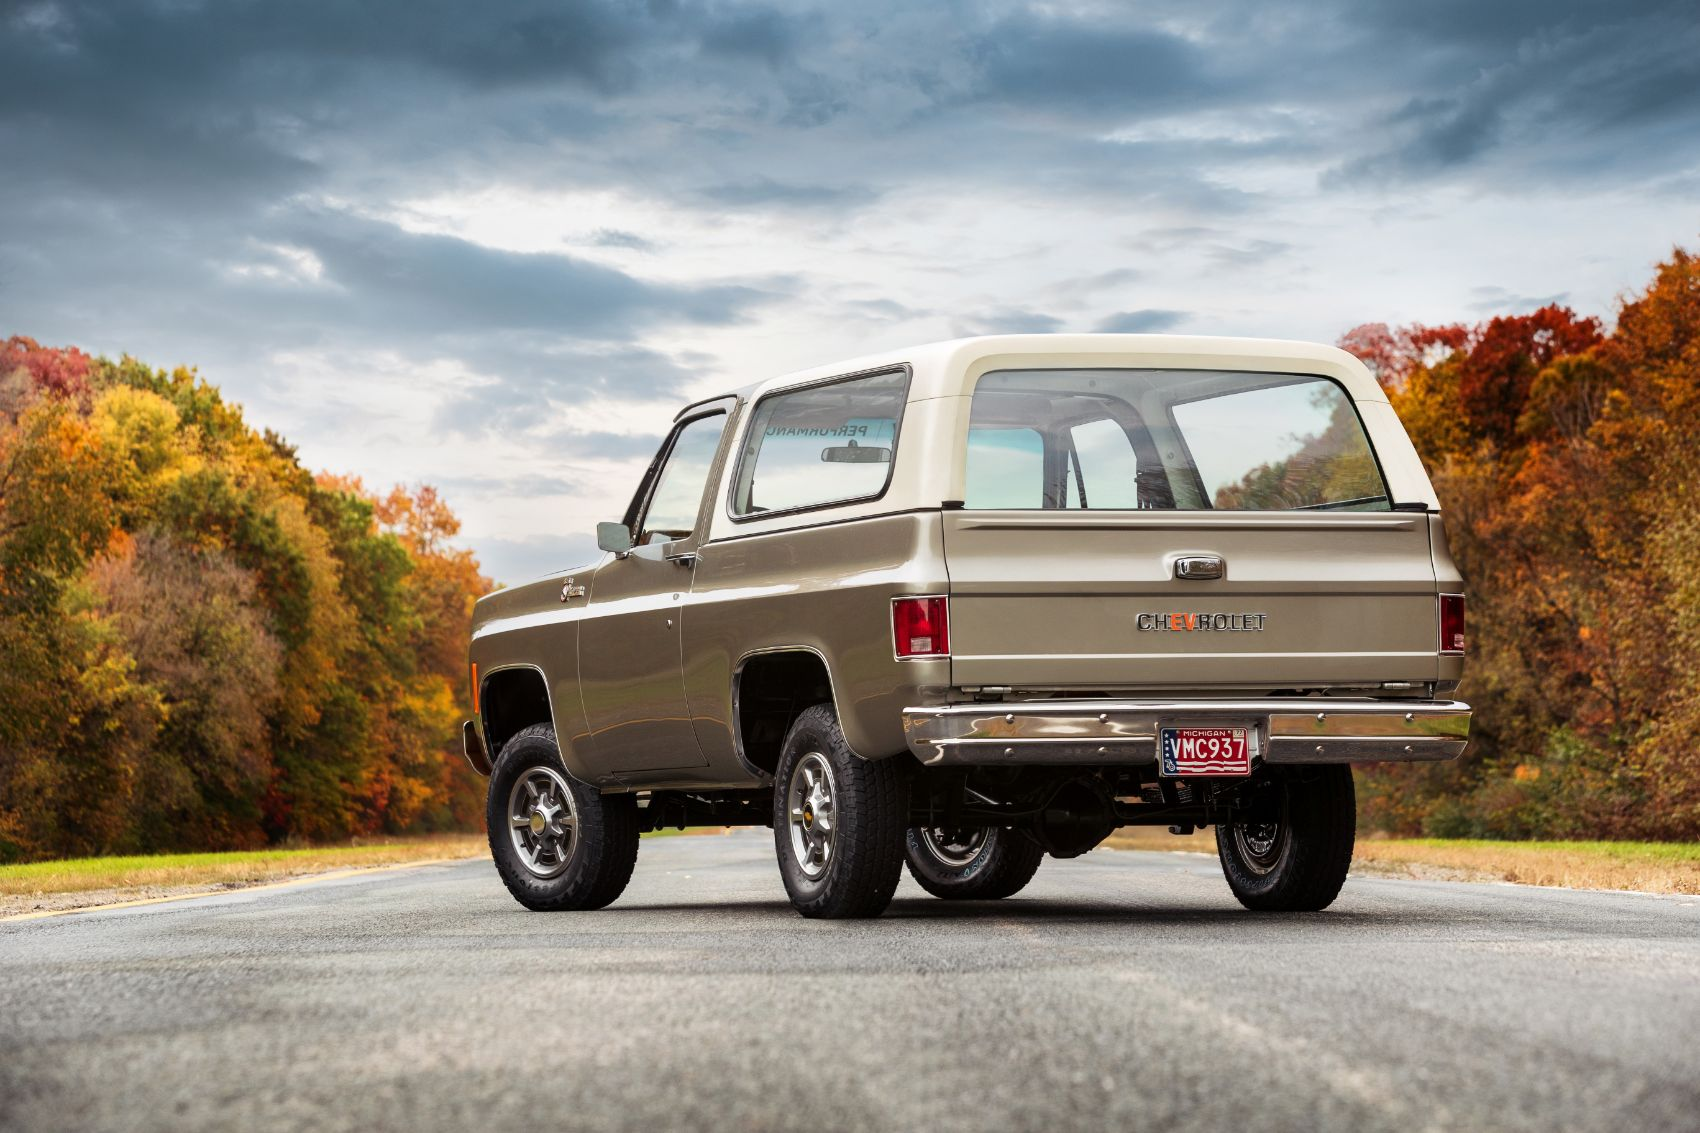 Chevy K5 Blazer-E Rolls Into SEMA360 as a Modern EV With Vintage Flair